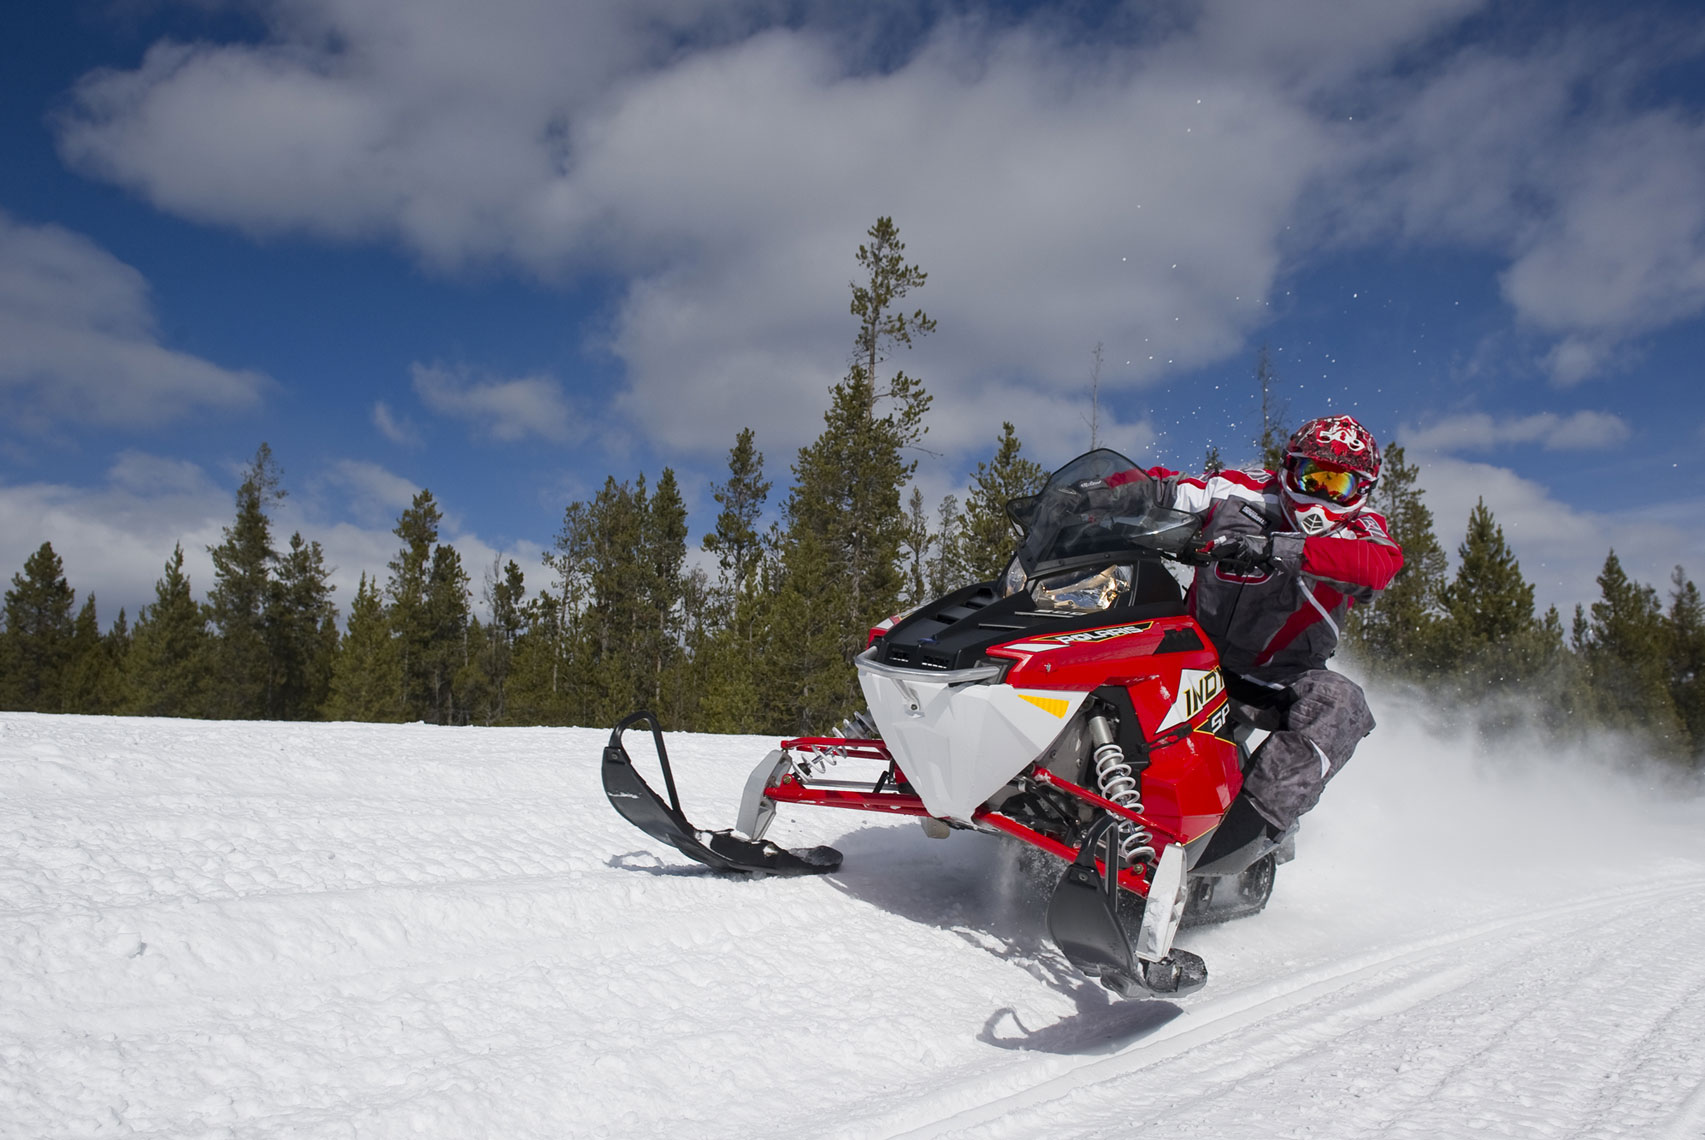 Snowmobile-Photography-by-Kort-Duce-123